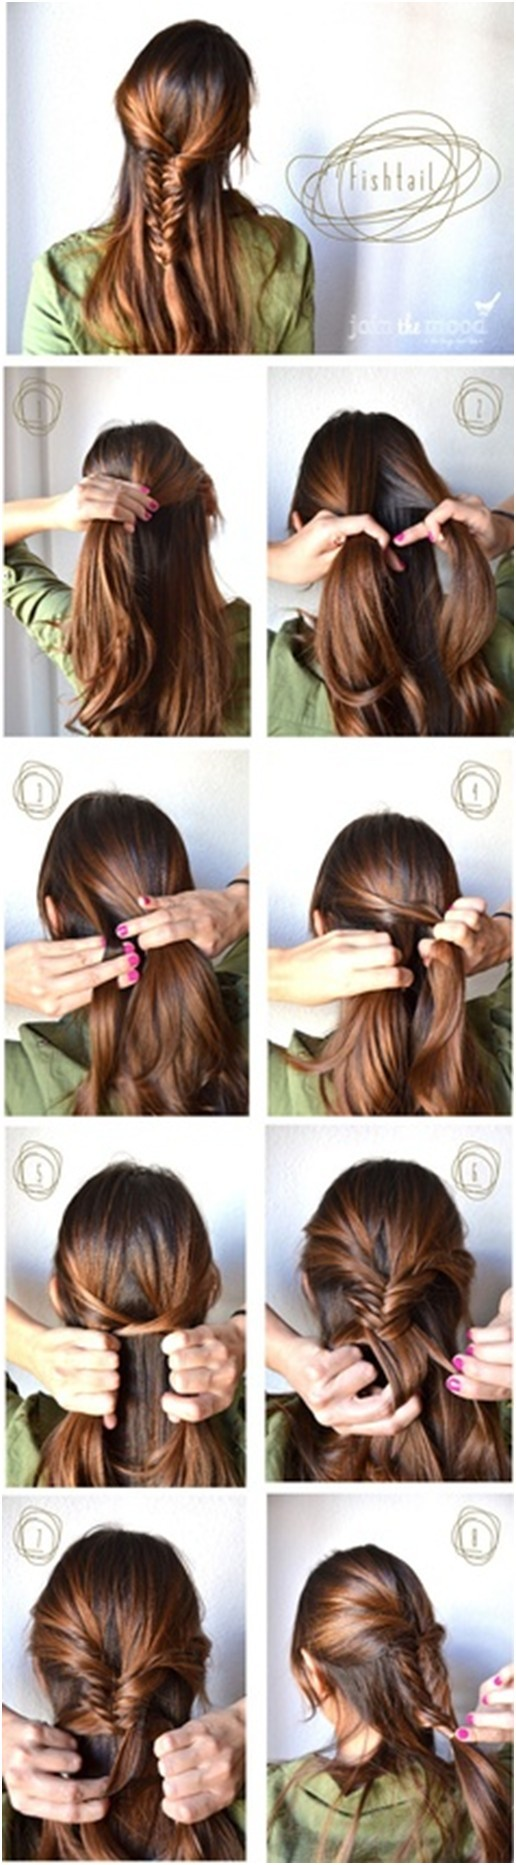 Easy DIY Braids for Long Hair